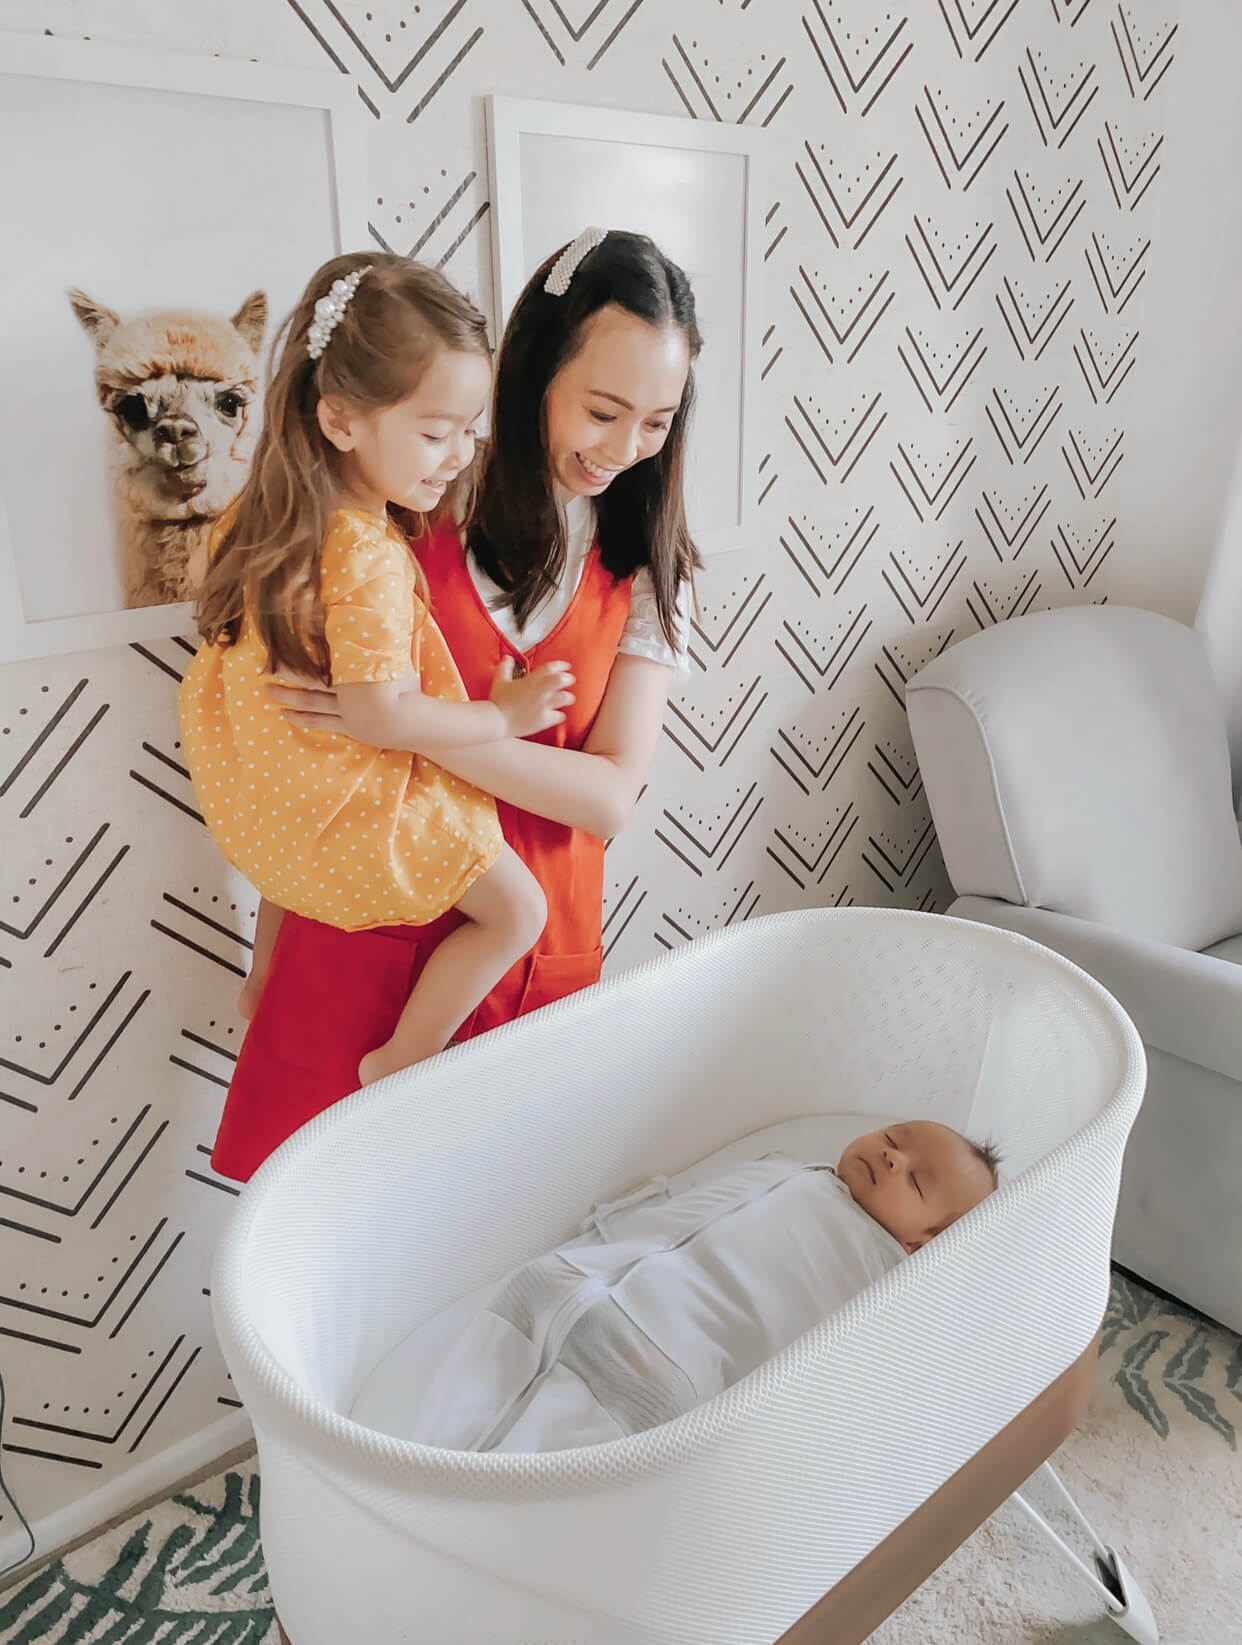 Snoo Bassinet Review | Safest Smartest Baby Bed | Dr. Harvey Karp | Happiest Baby | tiffanieanne.com 6